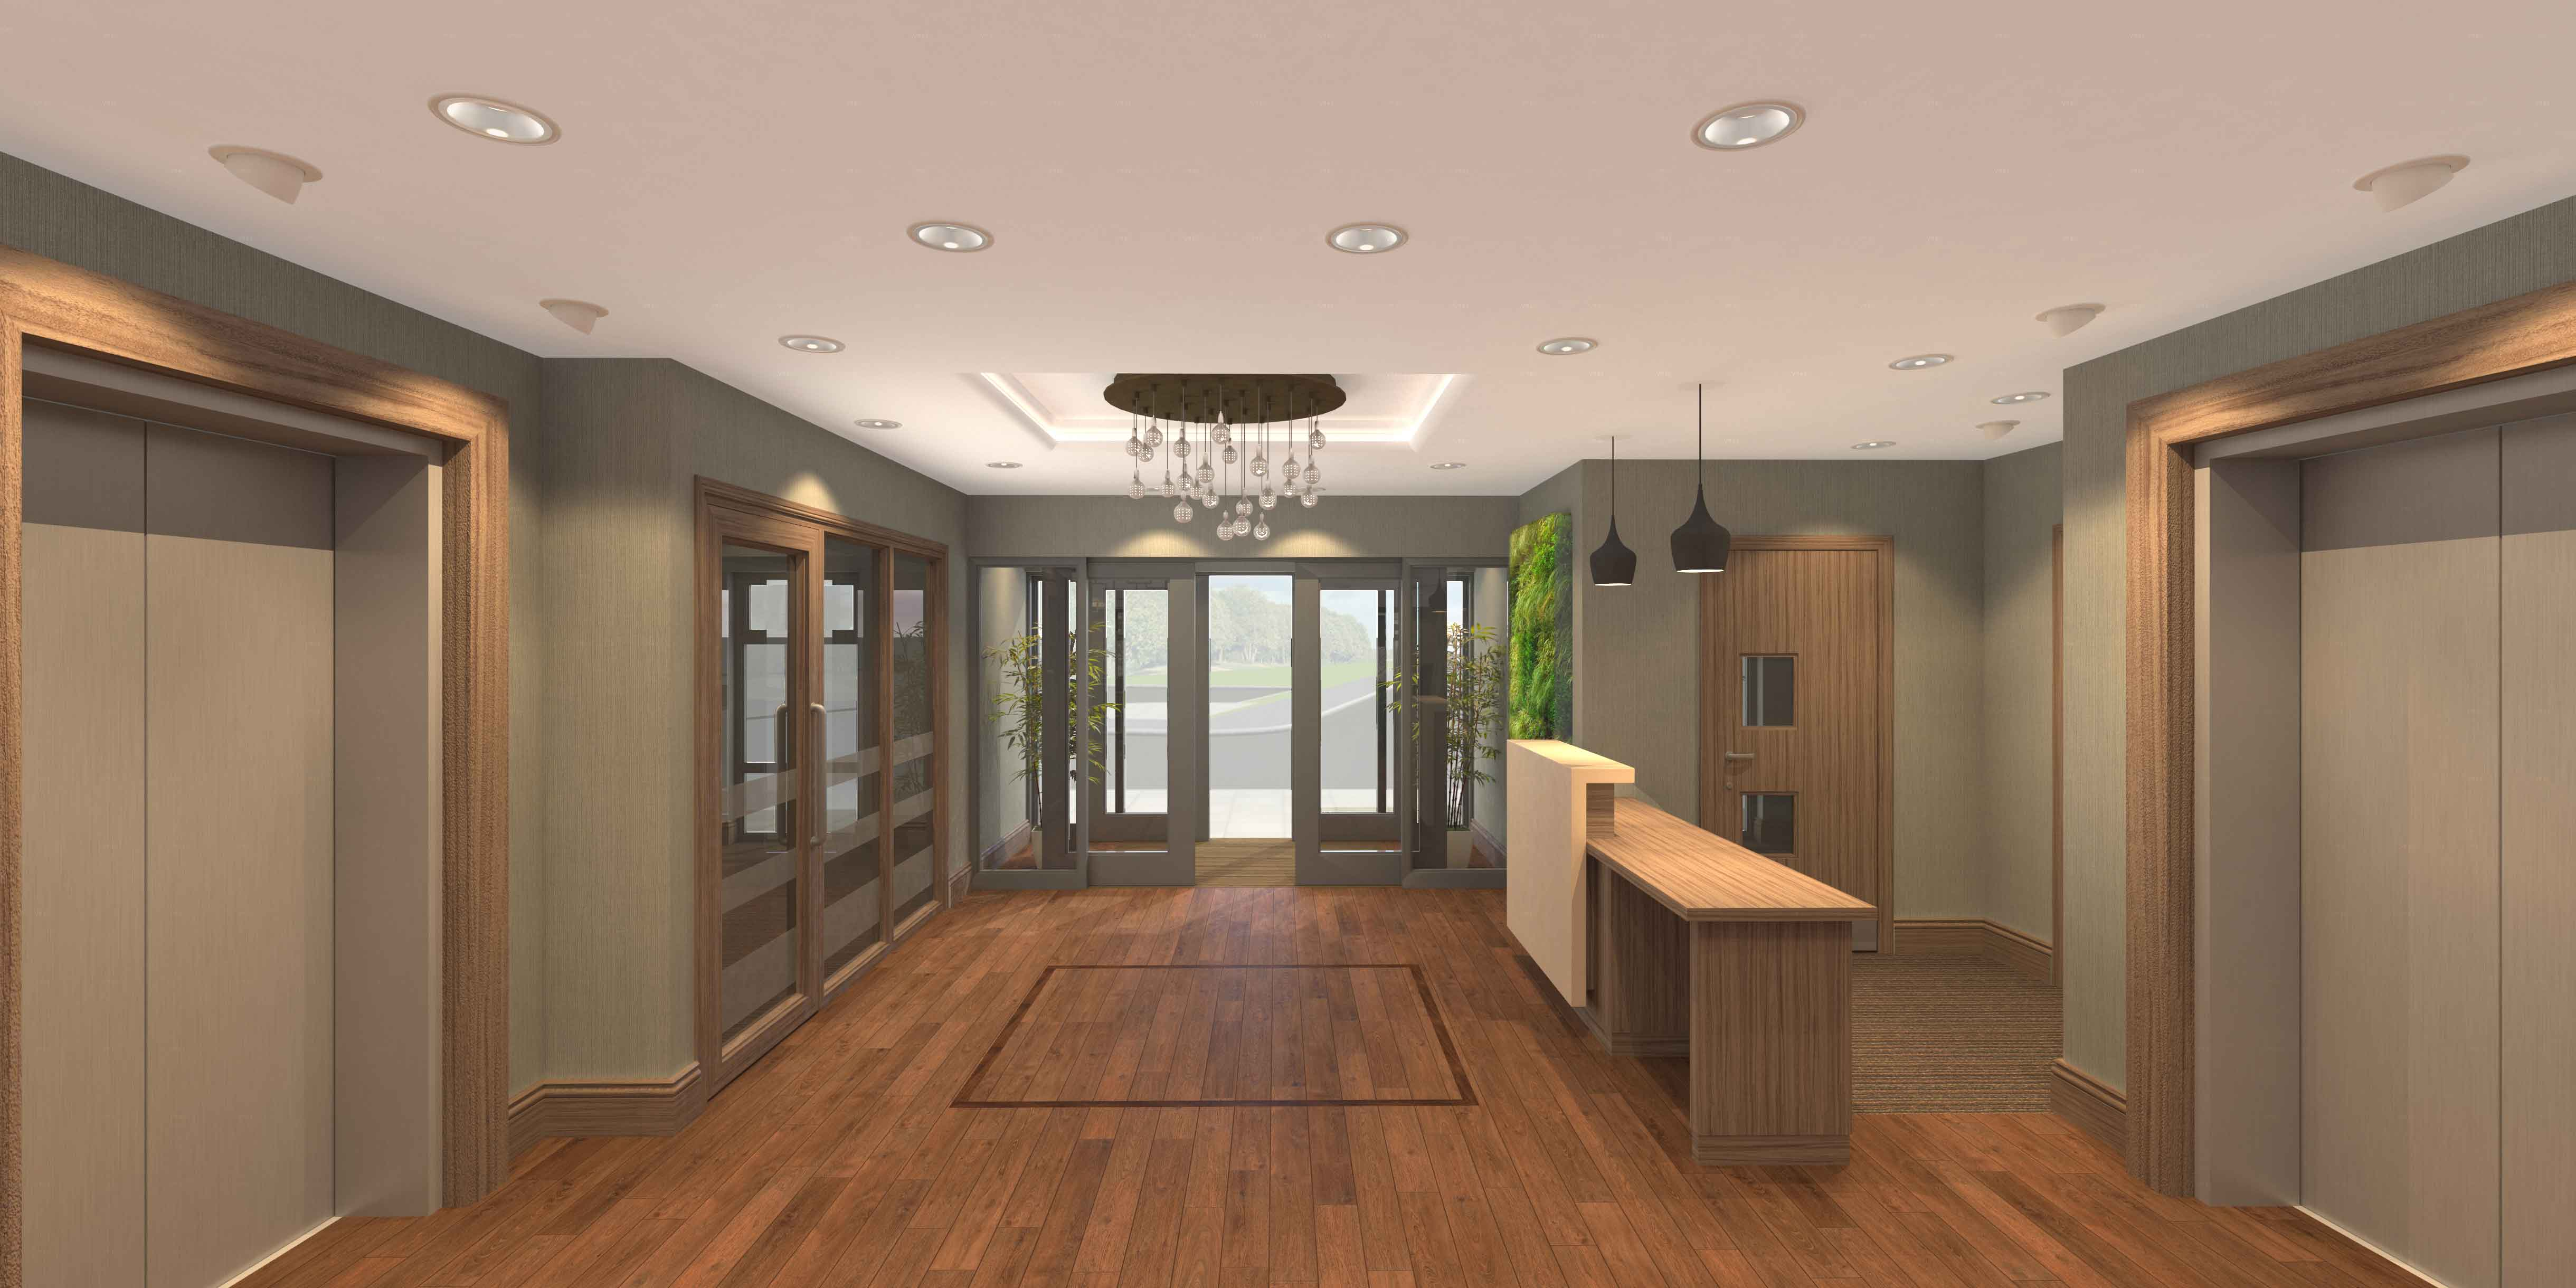 Interiors - Best Care Facility